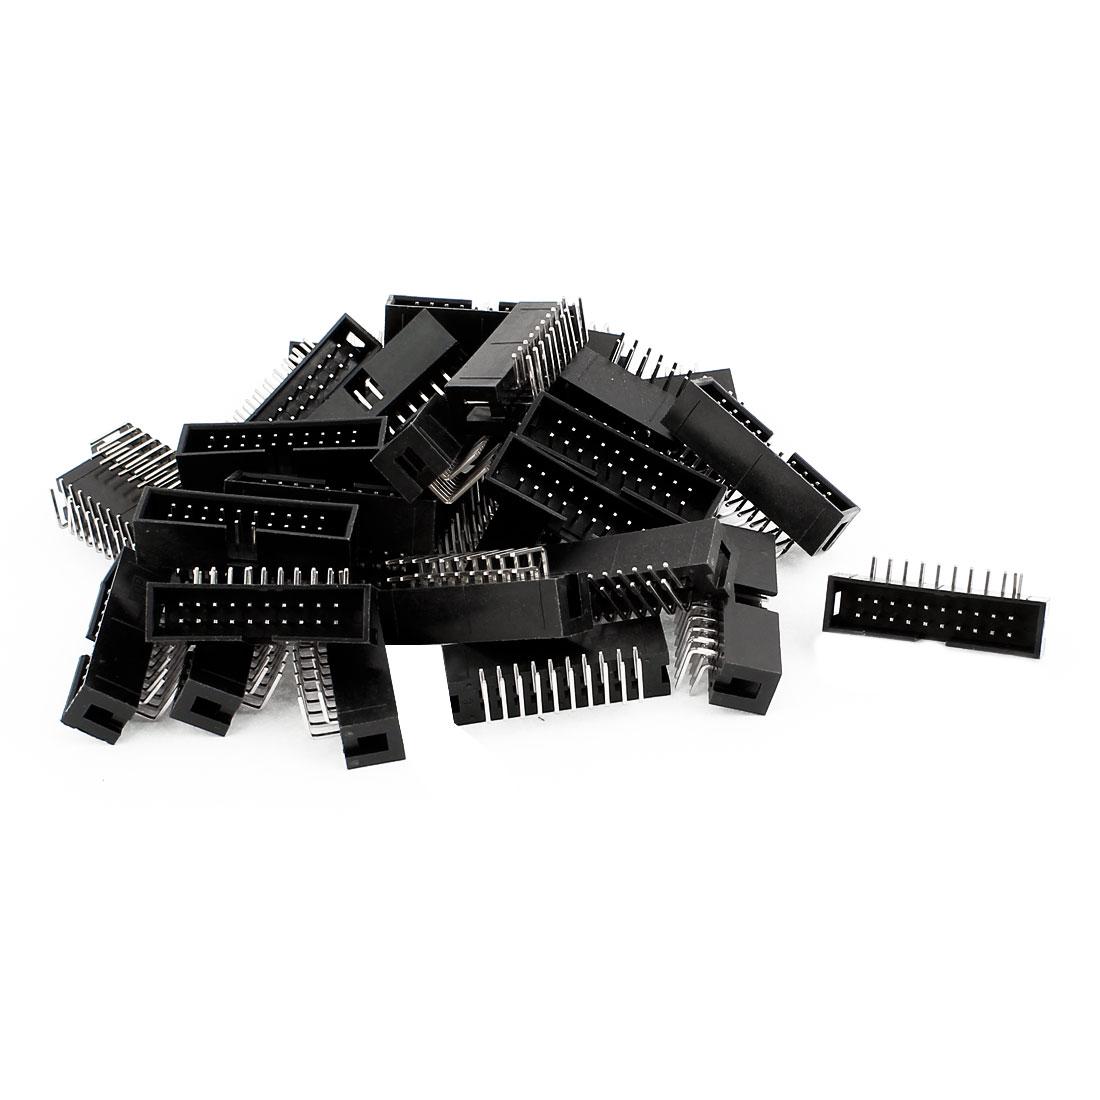 IDC Right Angled Box Header Connector 20 Way Pitch 2.54mm 31 Pcs